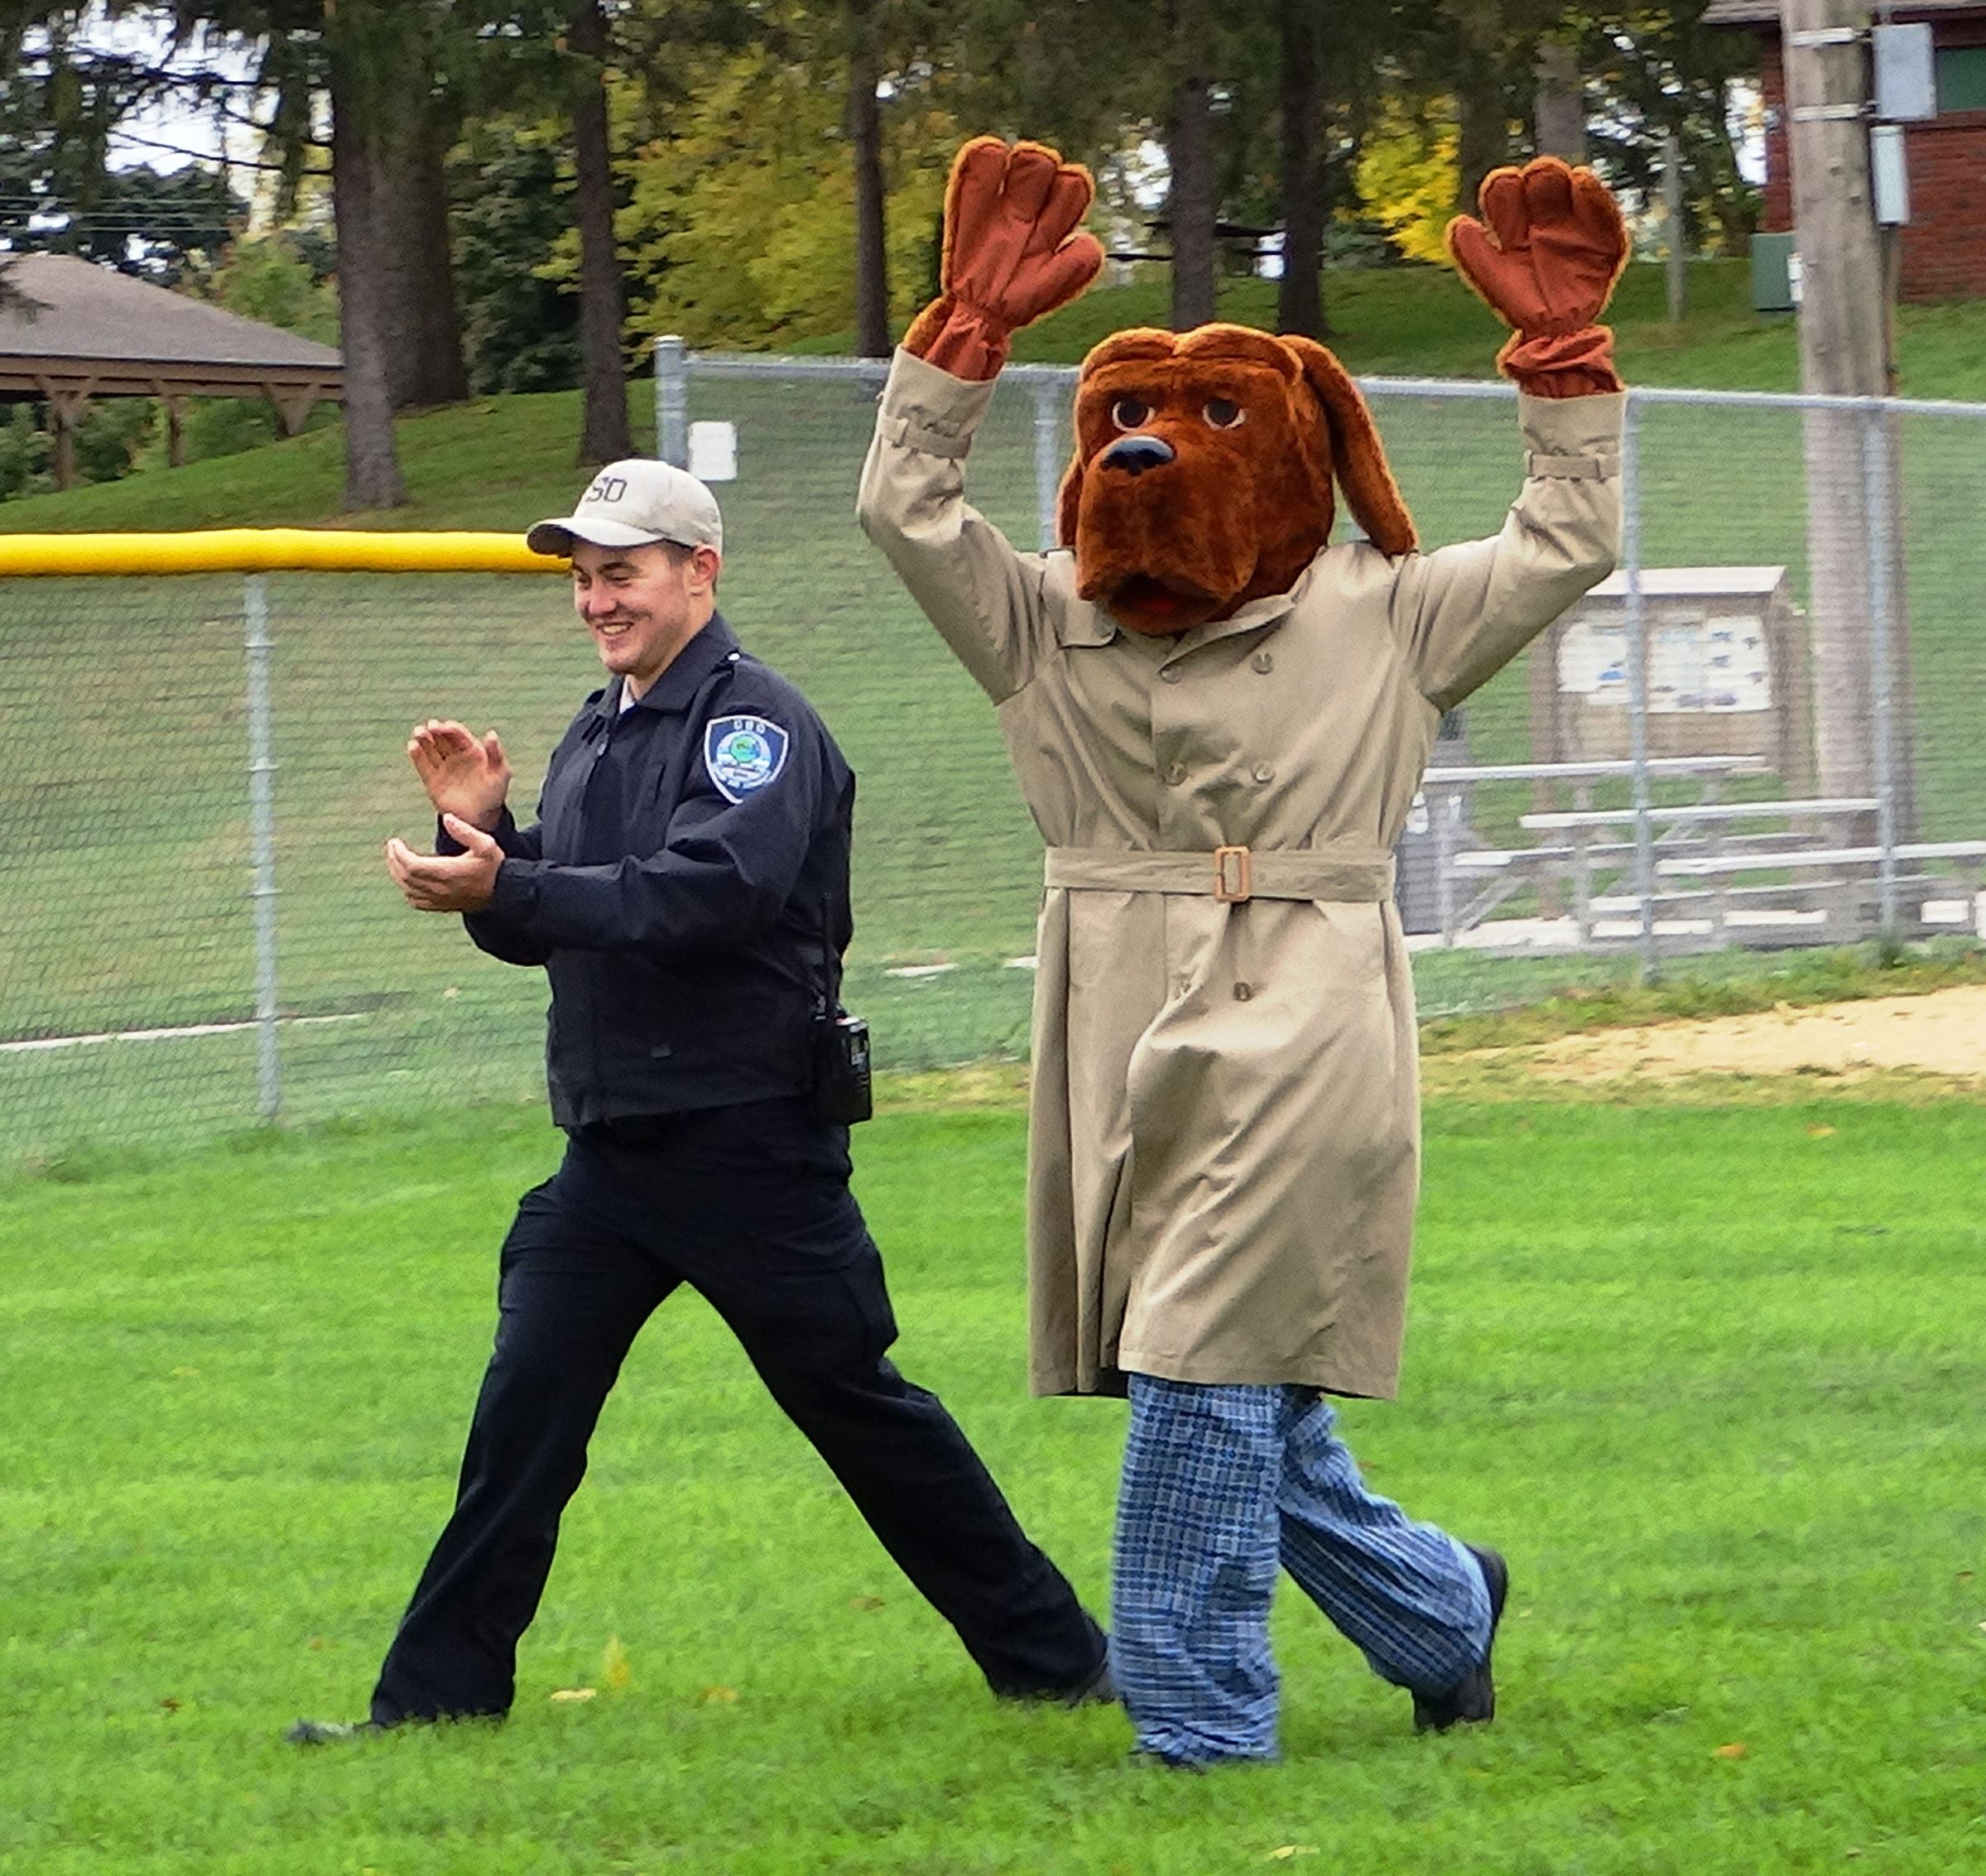 McGruff and a Police Officer Celebrating